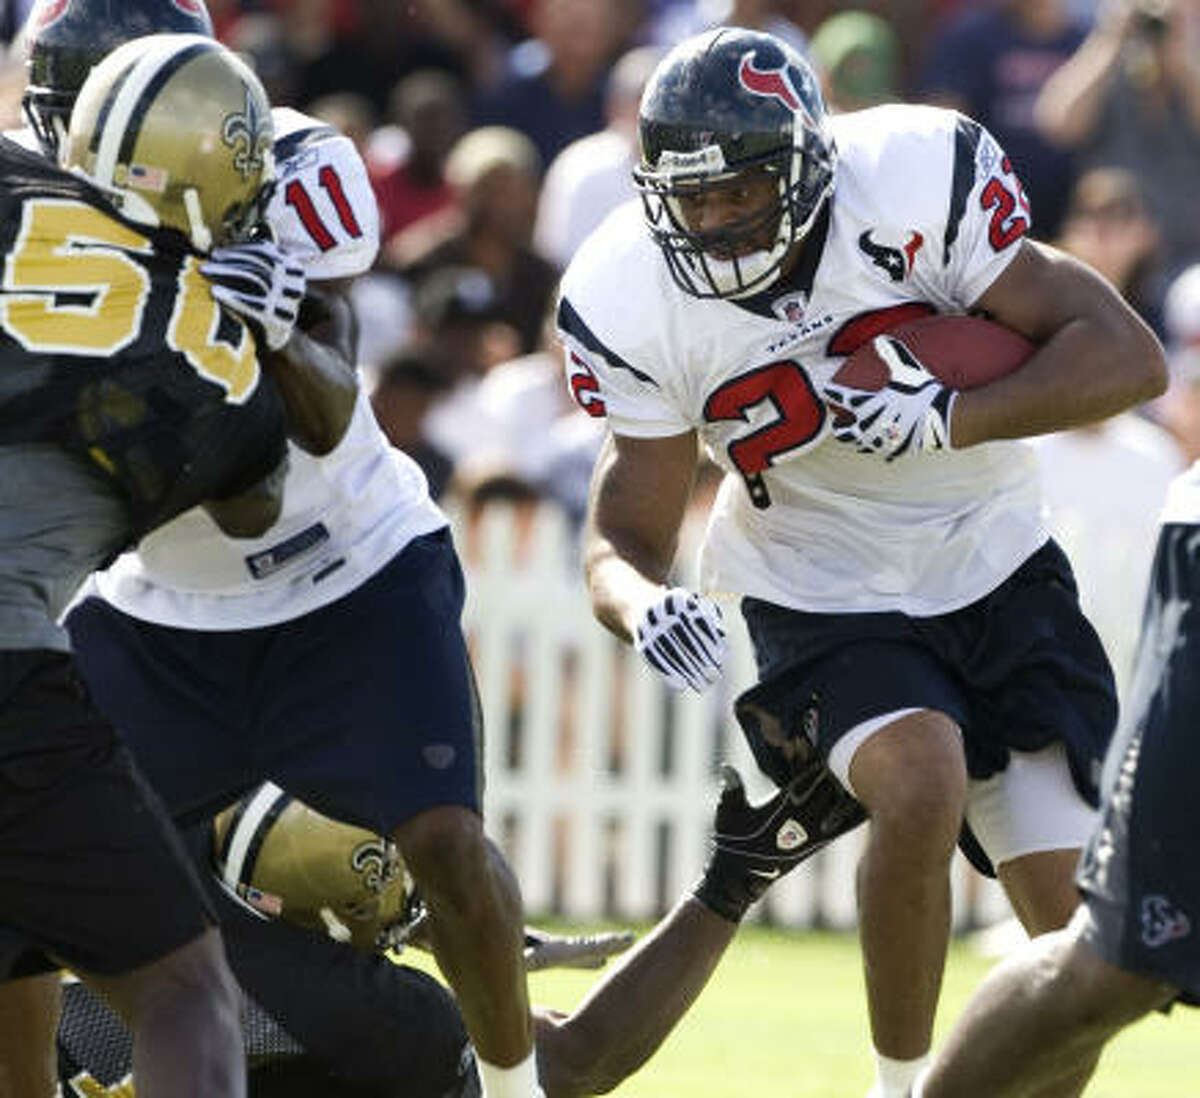 Running backs (4) They're in: Steve Slaton, Chris Brown (pictured), Ryan Moats, Andre Hall. They're out: Arian Foster.